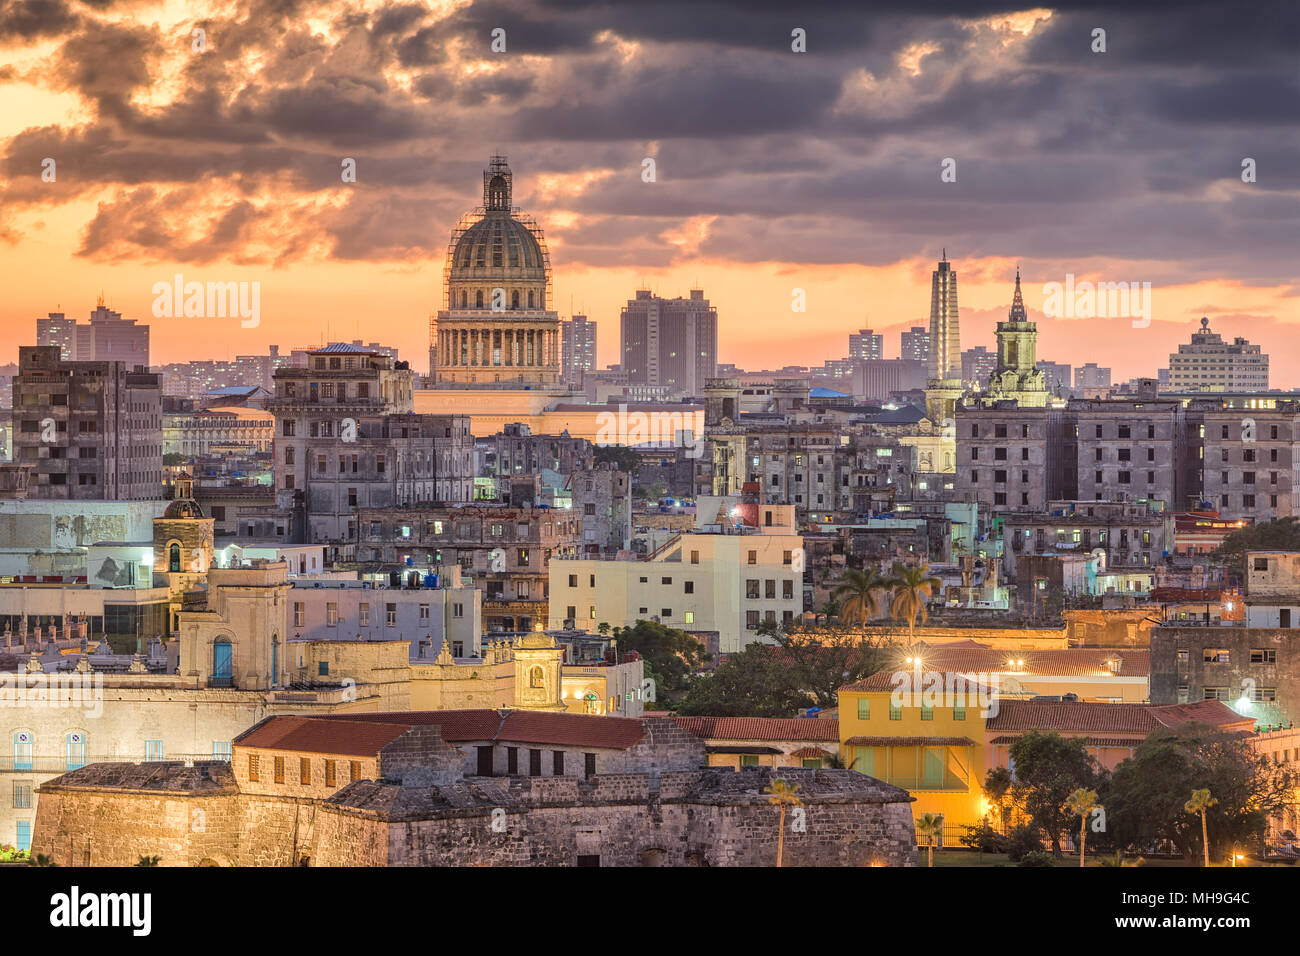 Havana, Cuba downtown skyline. - Stock Image